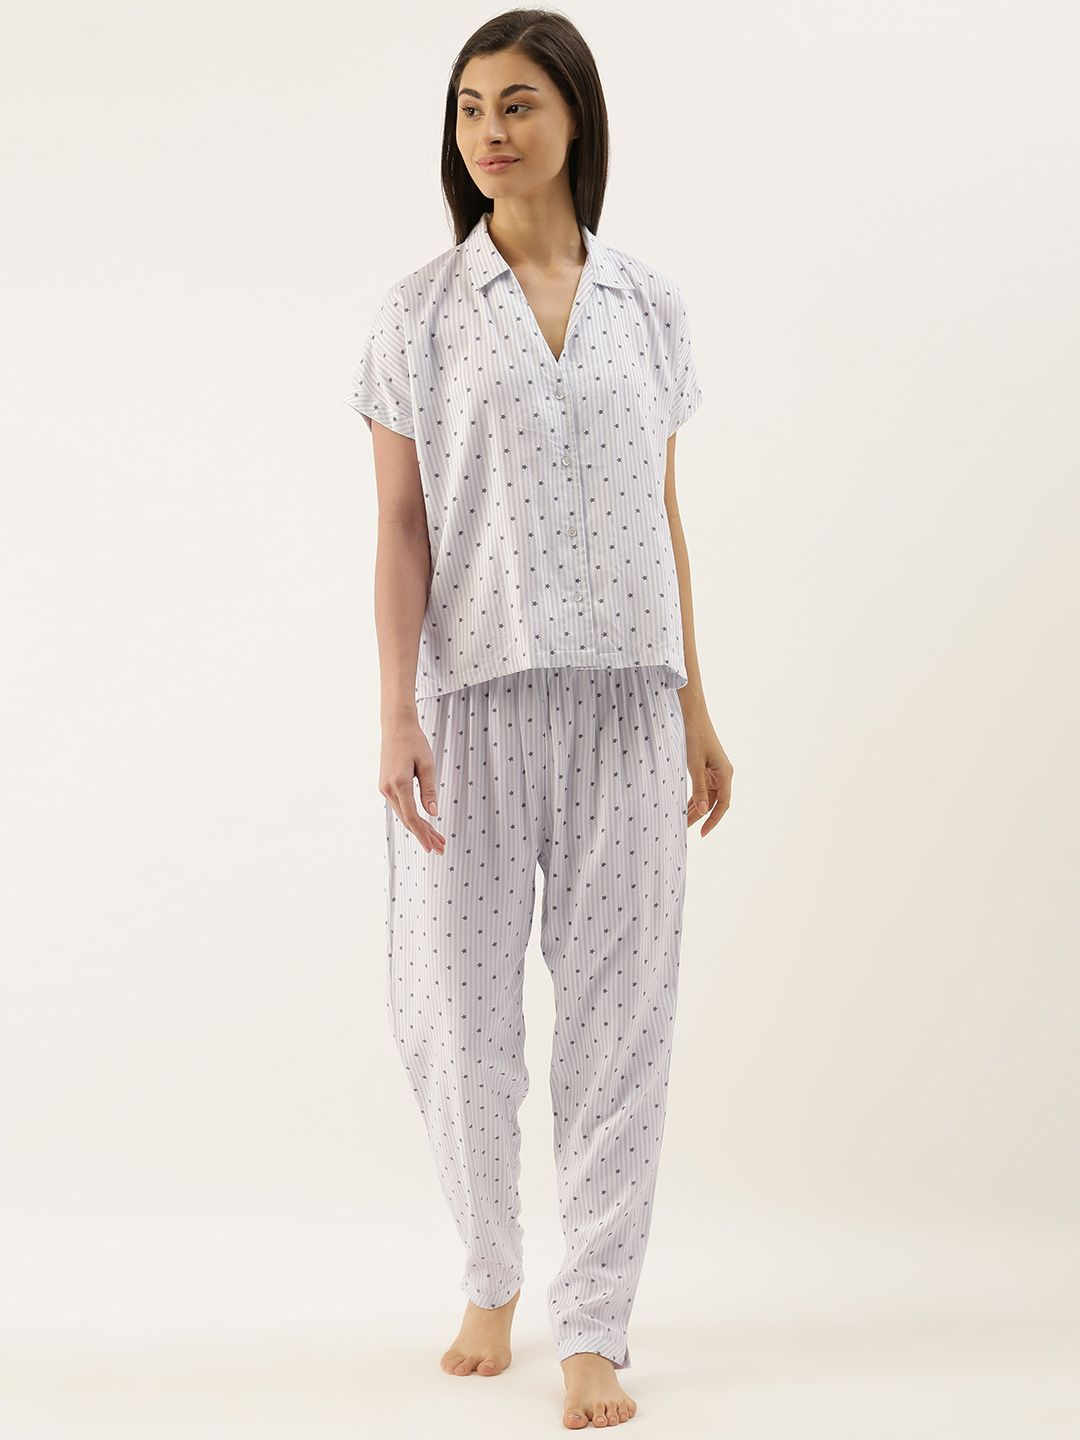 Slumber Jill Katrine White Blue Striped Viscose Twill Lounge Set